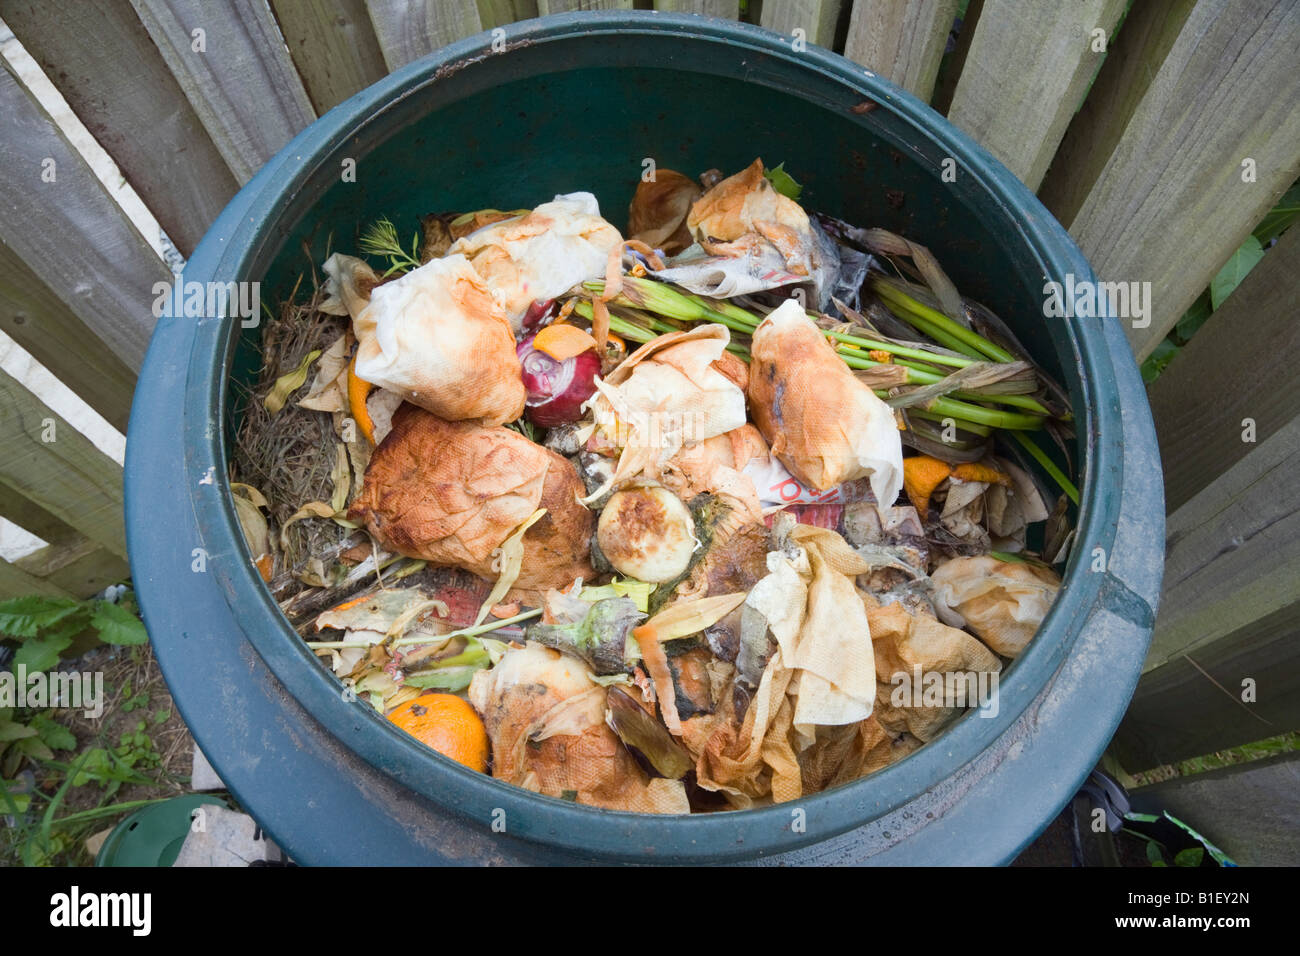 Compost bin full of mouldy vegetables and rotting organic food material from above - Stock Image